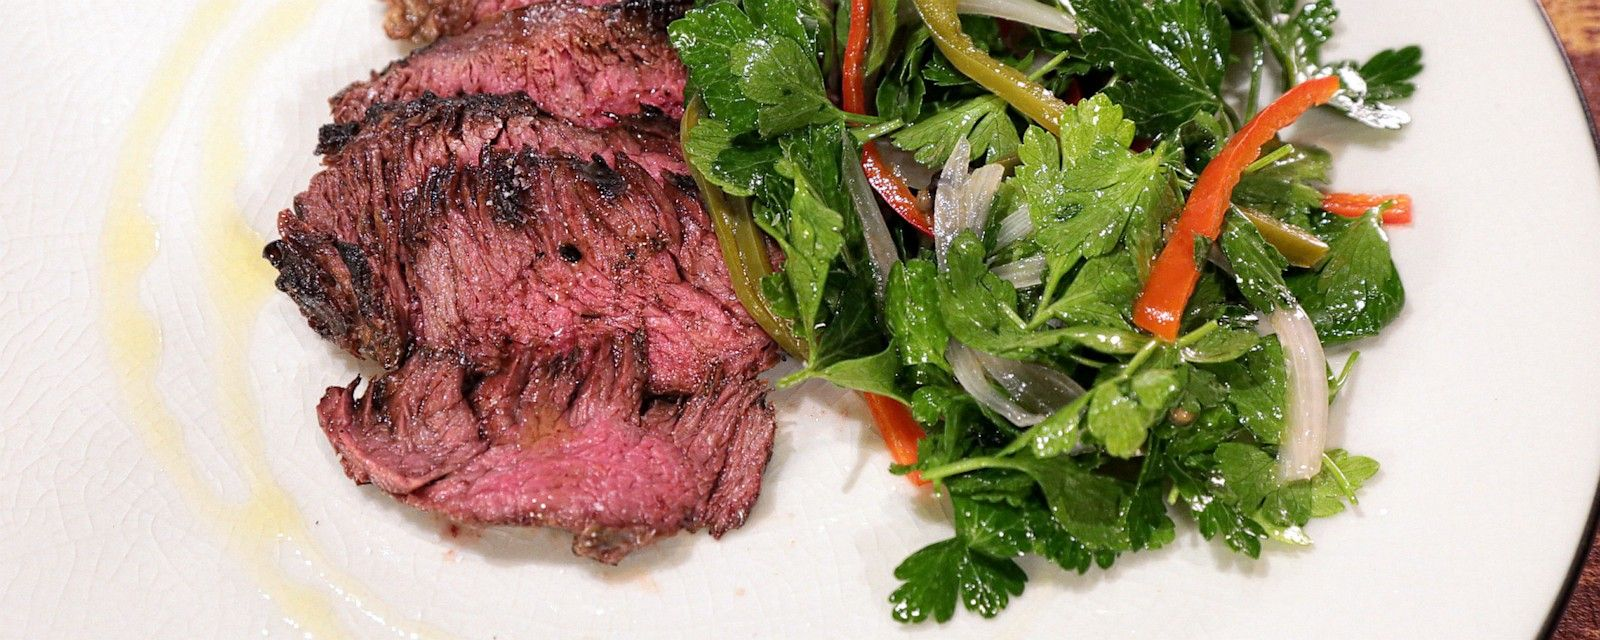 This Grilled Steak Steak Dishes Chili Salad Beef Recipes